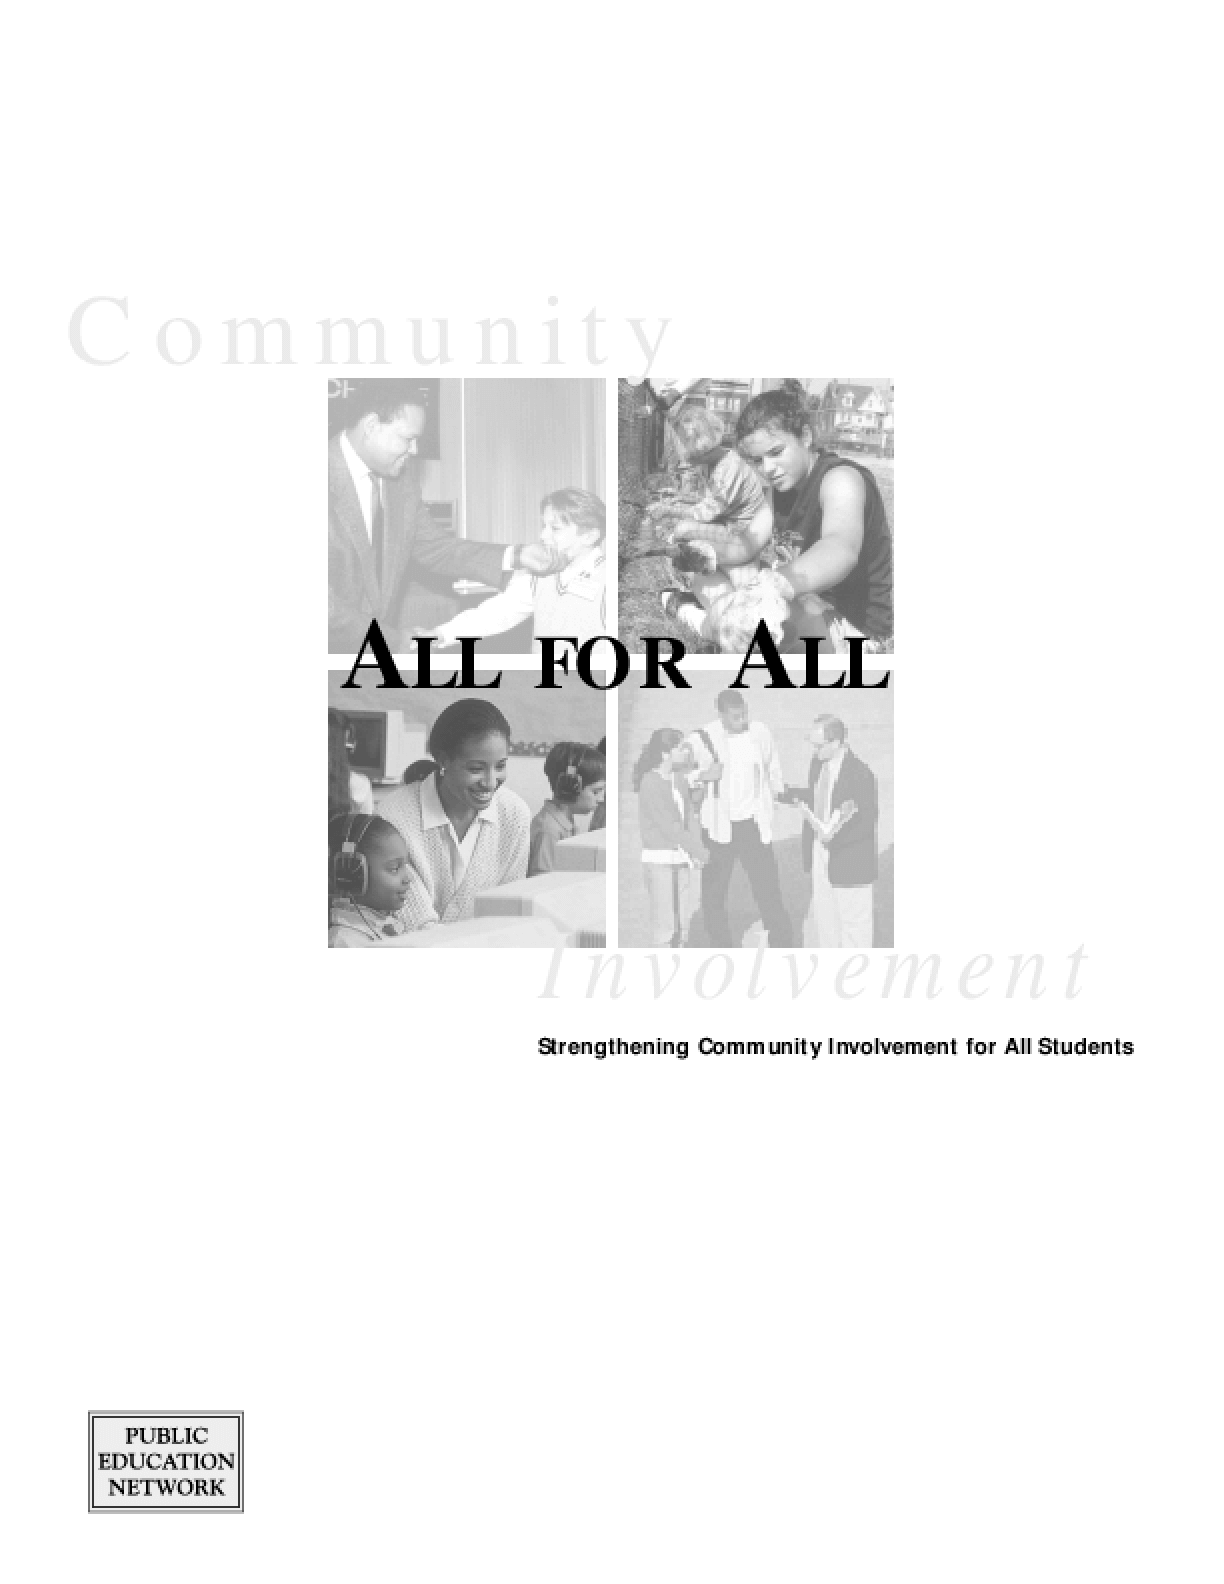 All for All: Strengthening Community Involvement for All Students